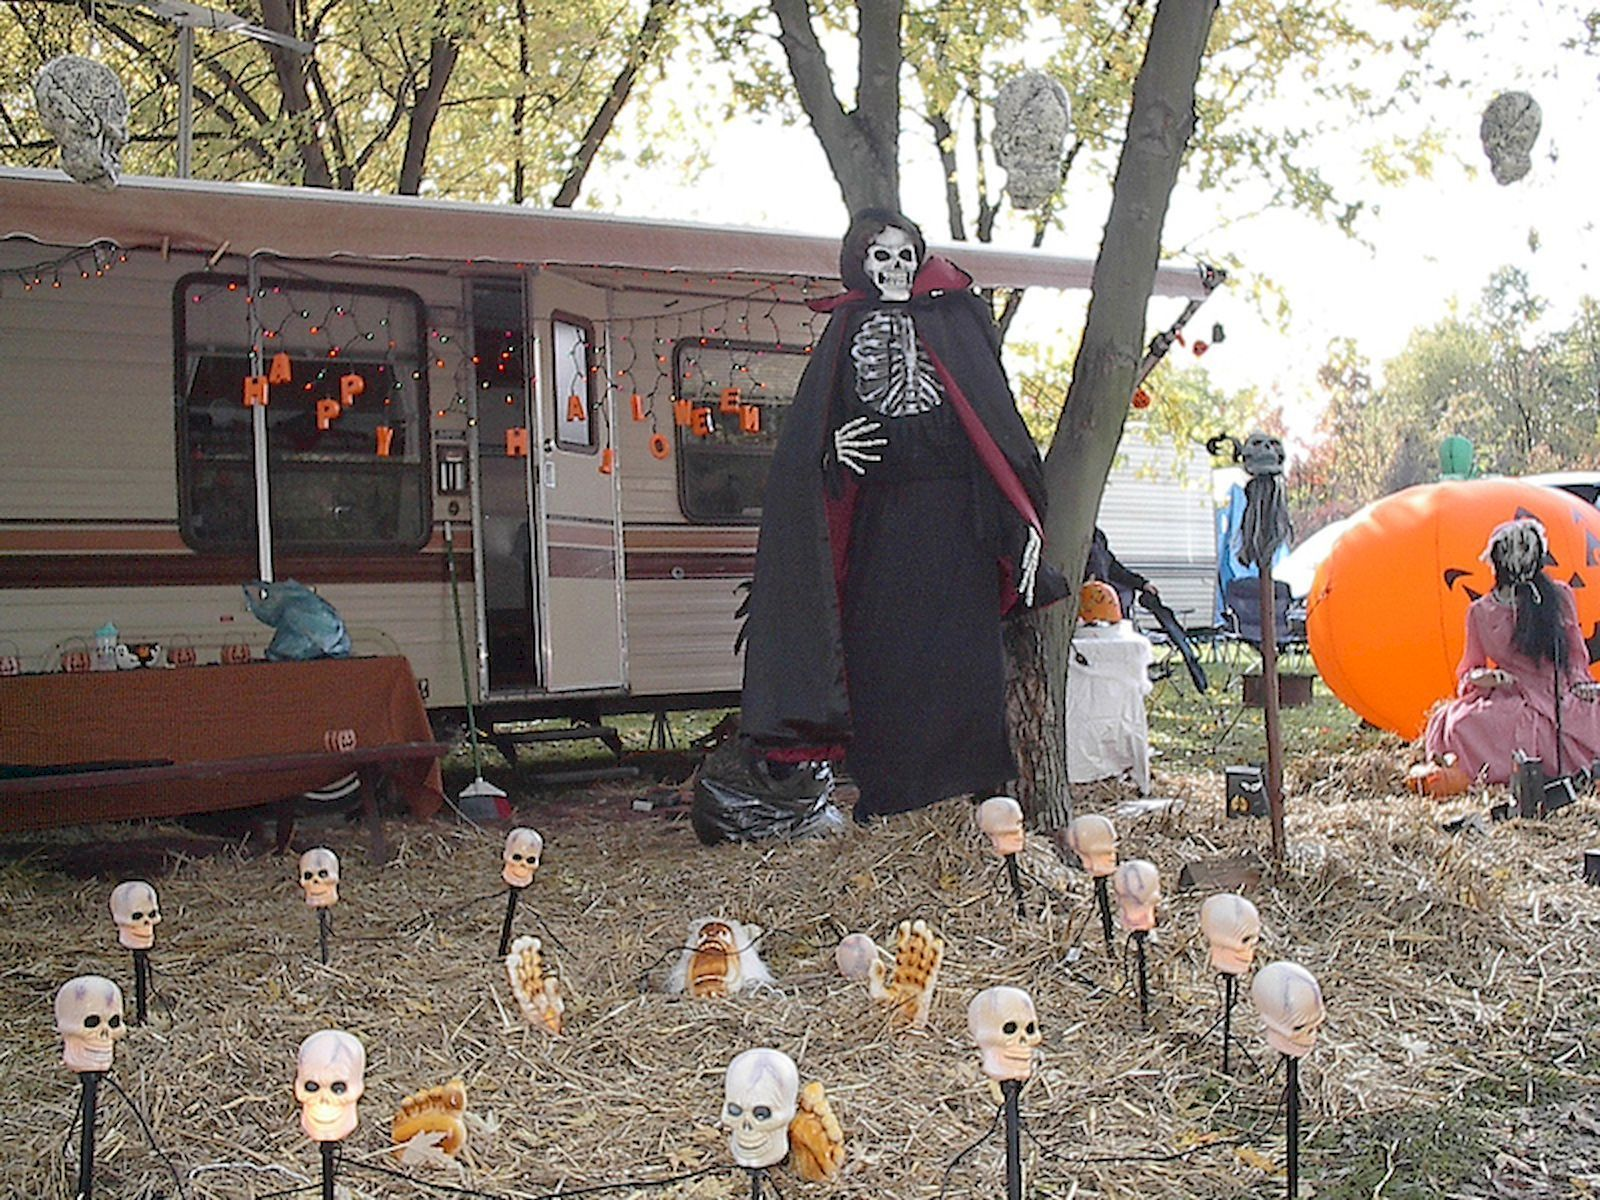 Cool 60 DIY Outdoor Halloween Decorations Ideas And Makeover   - diy outdoor halloween decorations